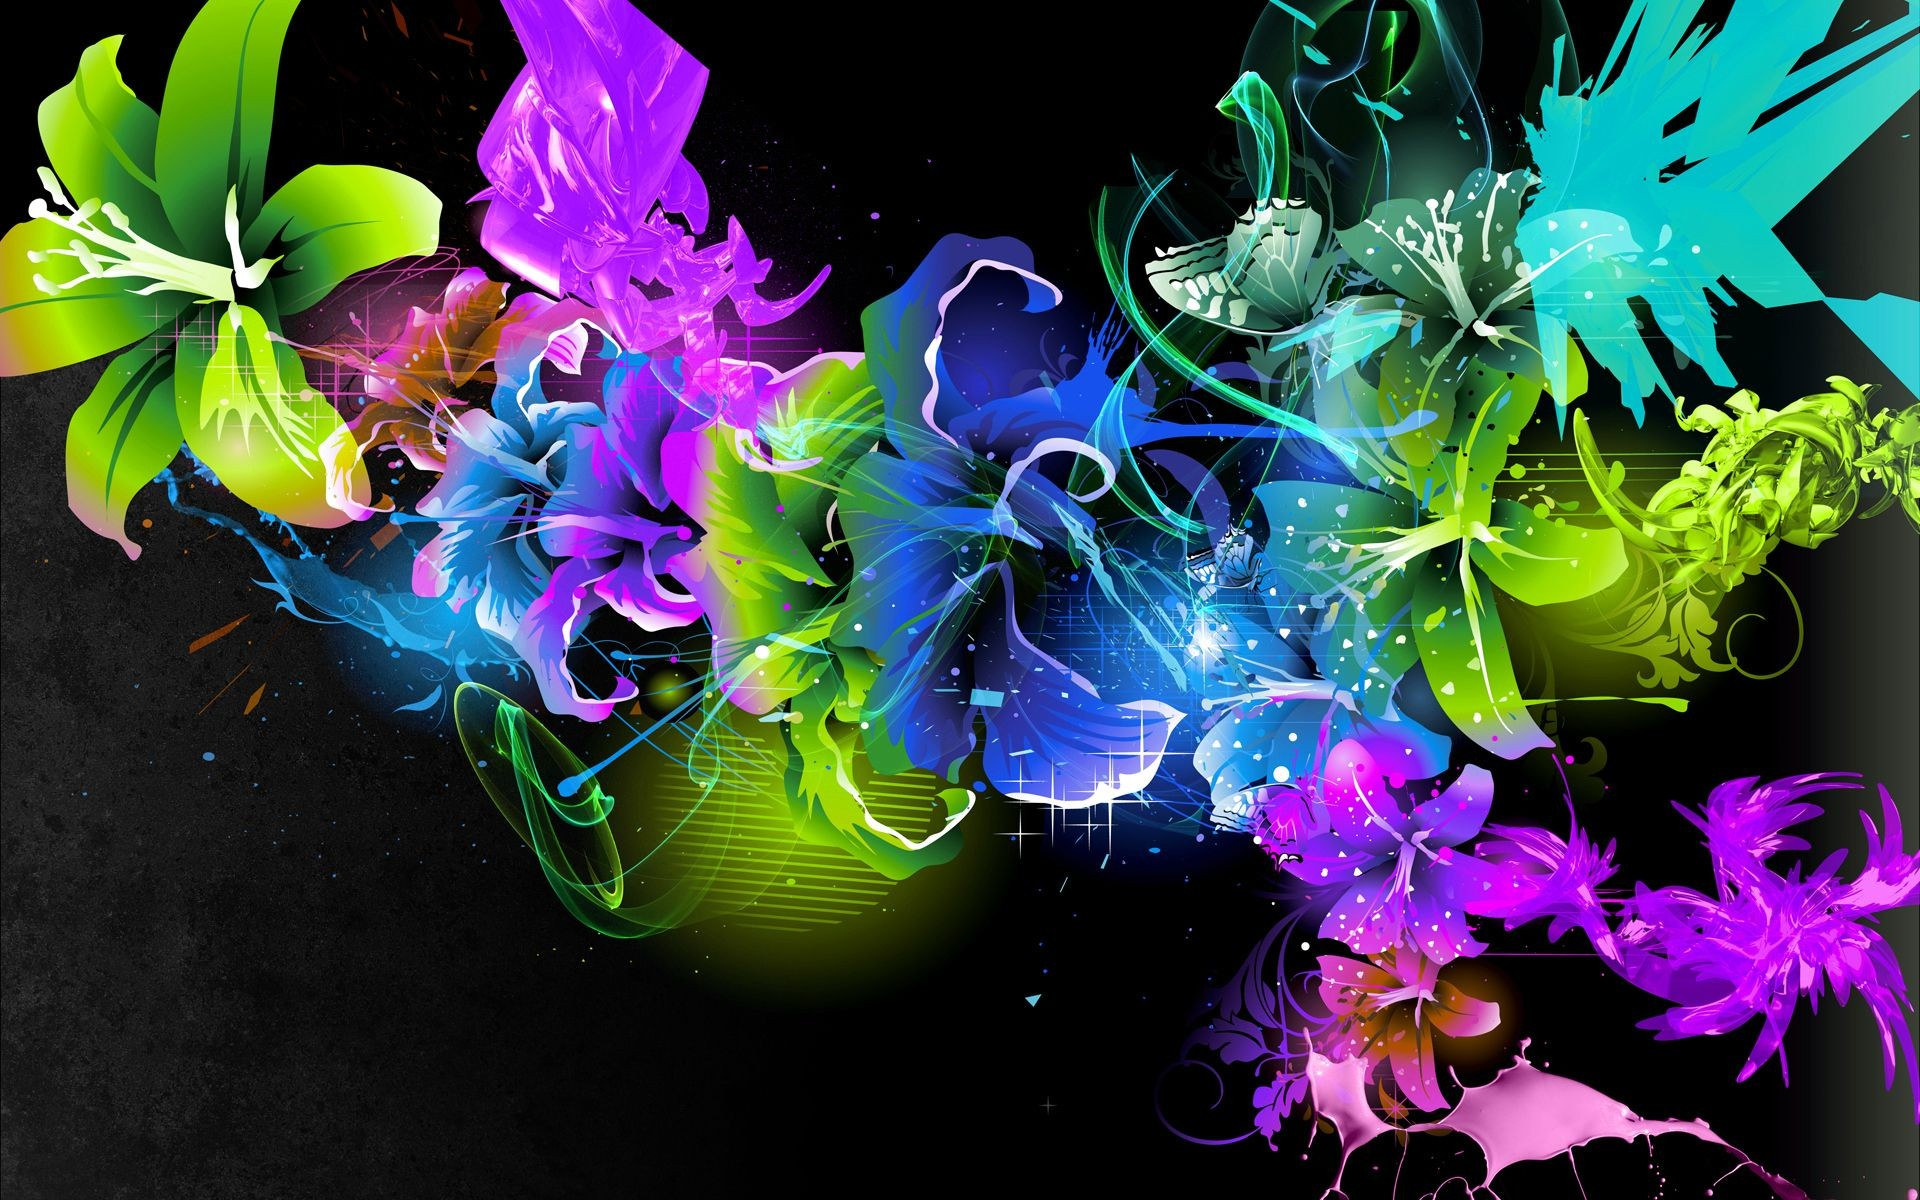 Abstract Art Wallpaper Desktop